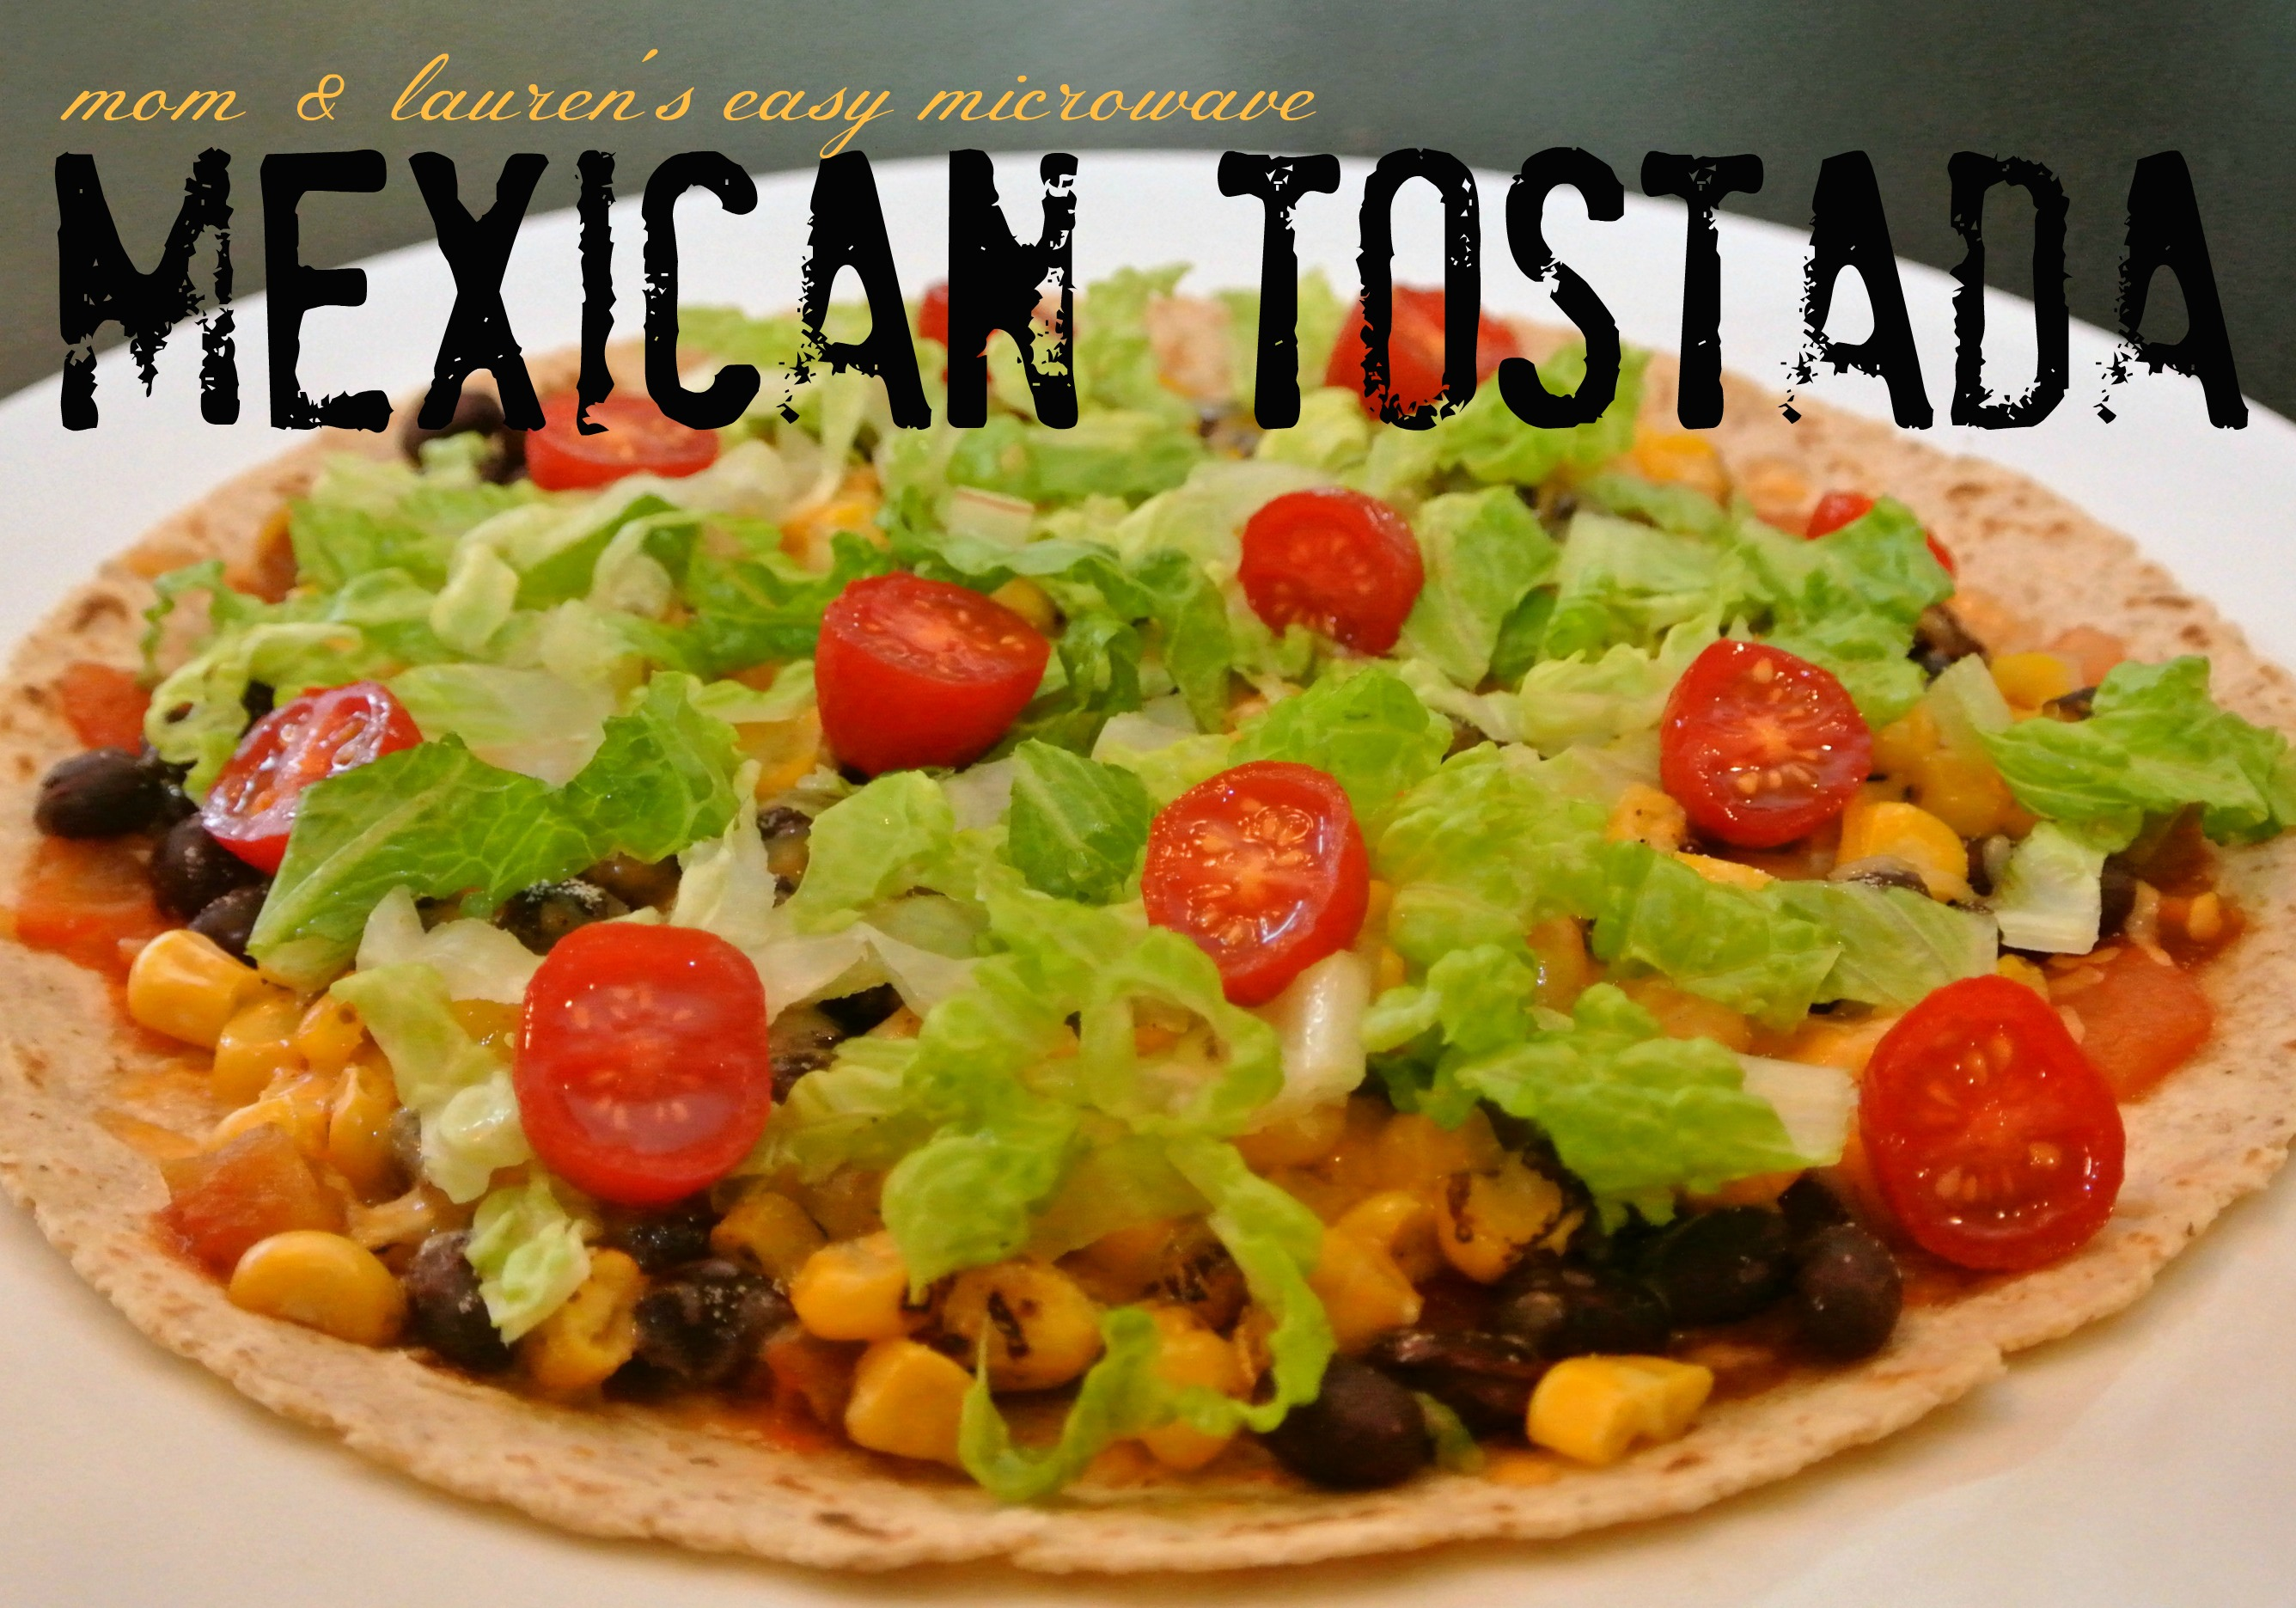 mom and lauren's easy microwave mexican tostada